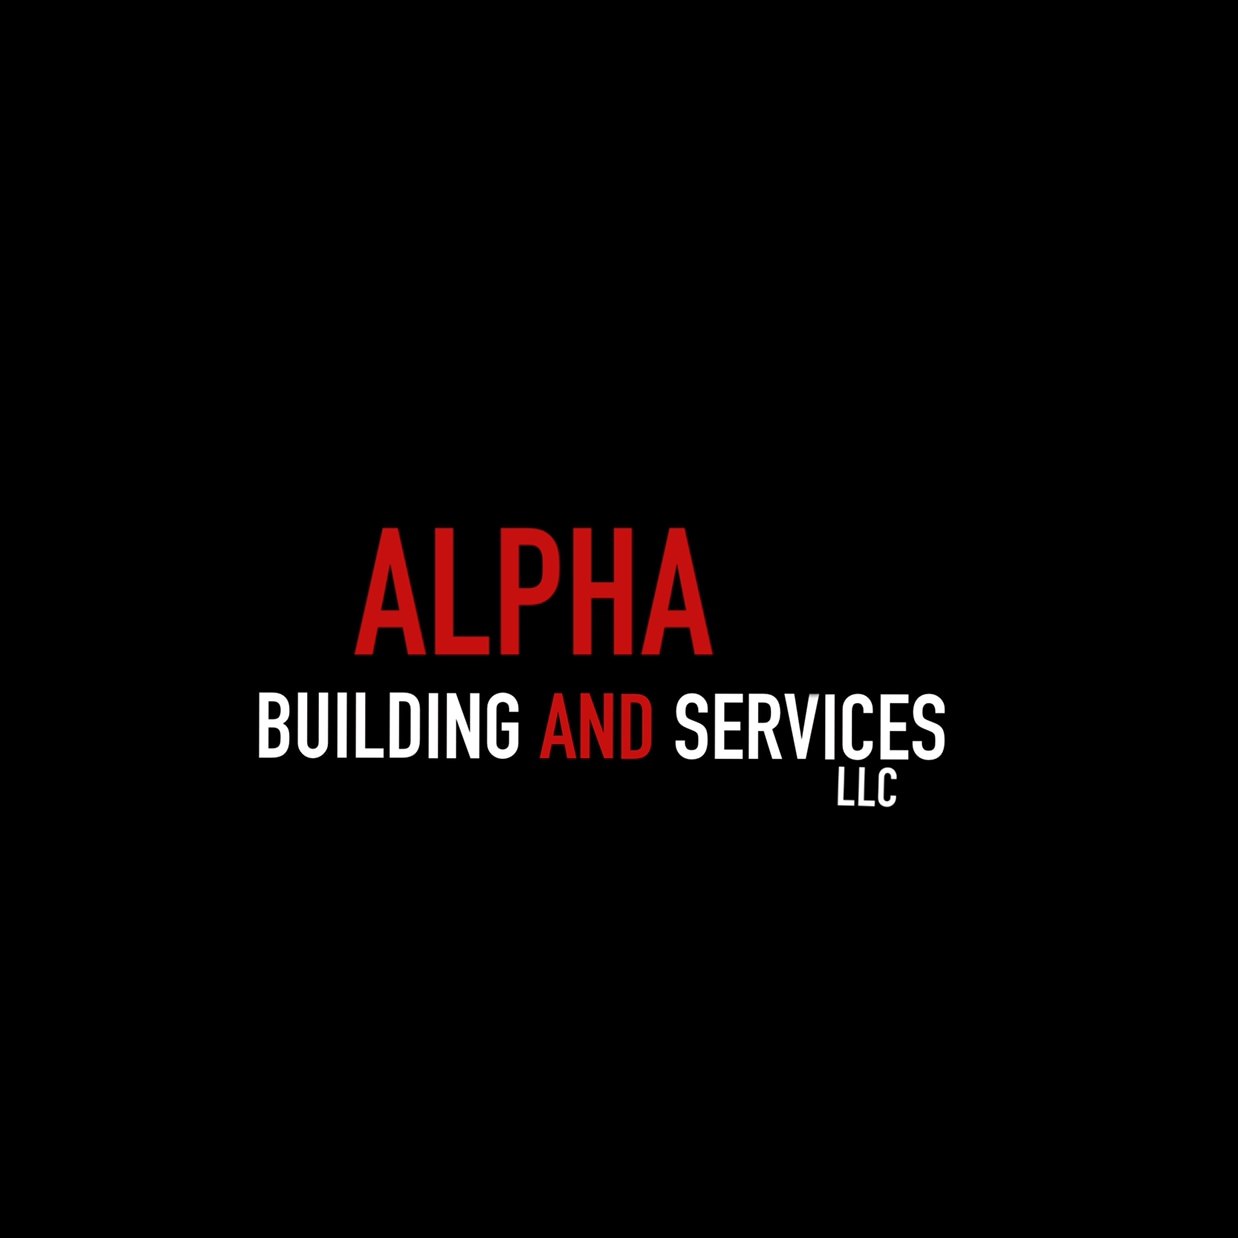 Alpha building and services LLC